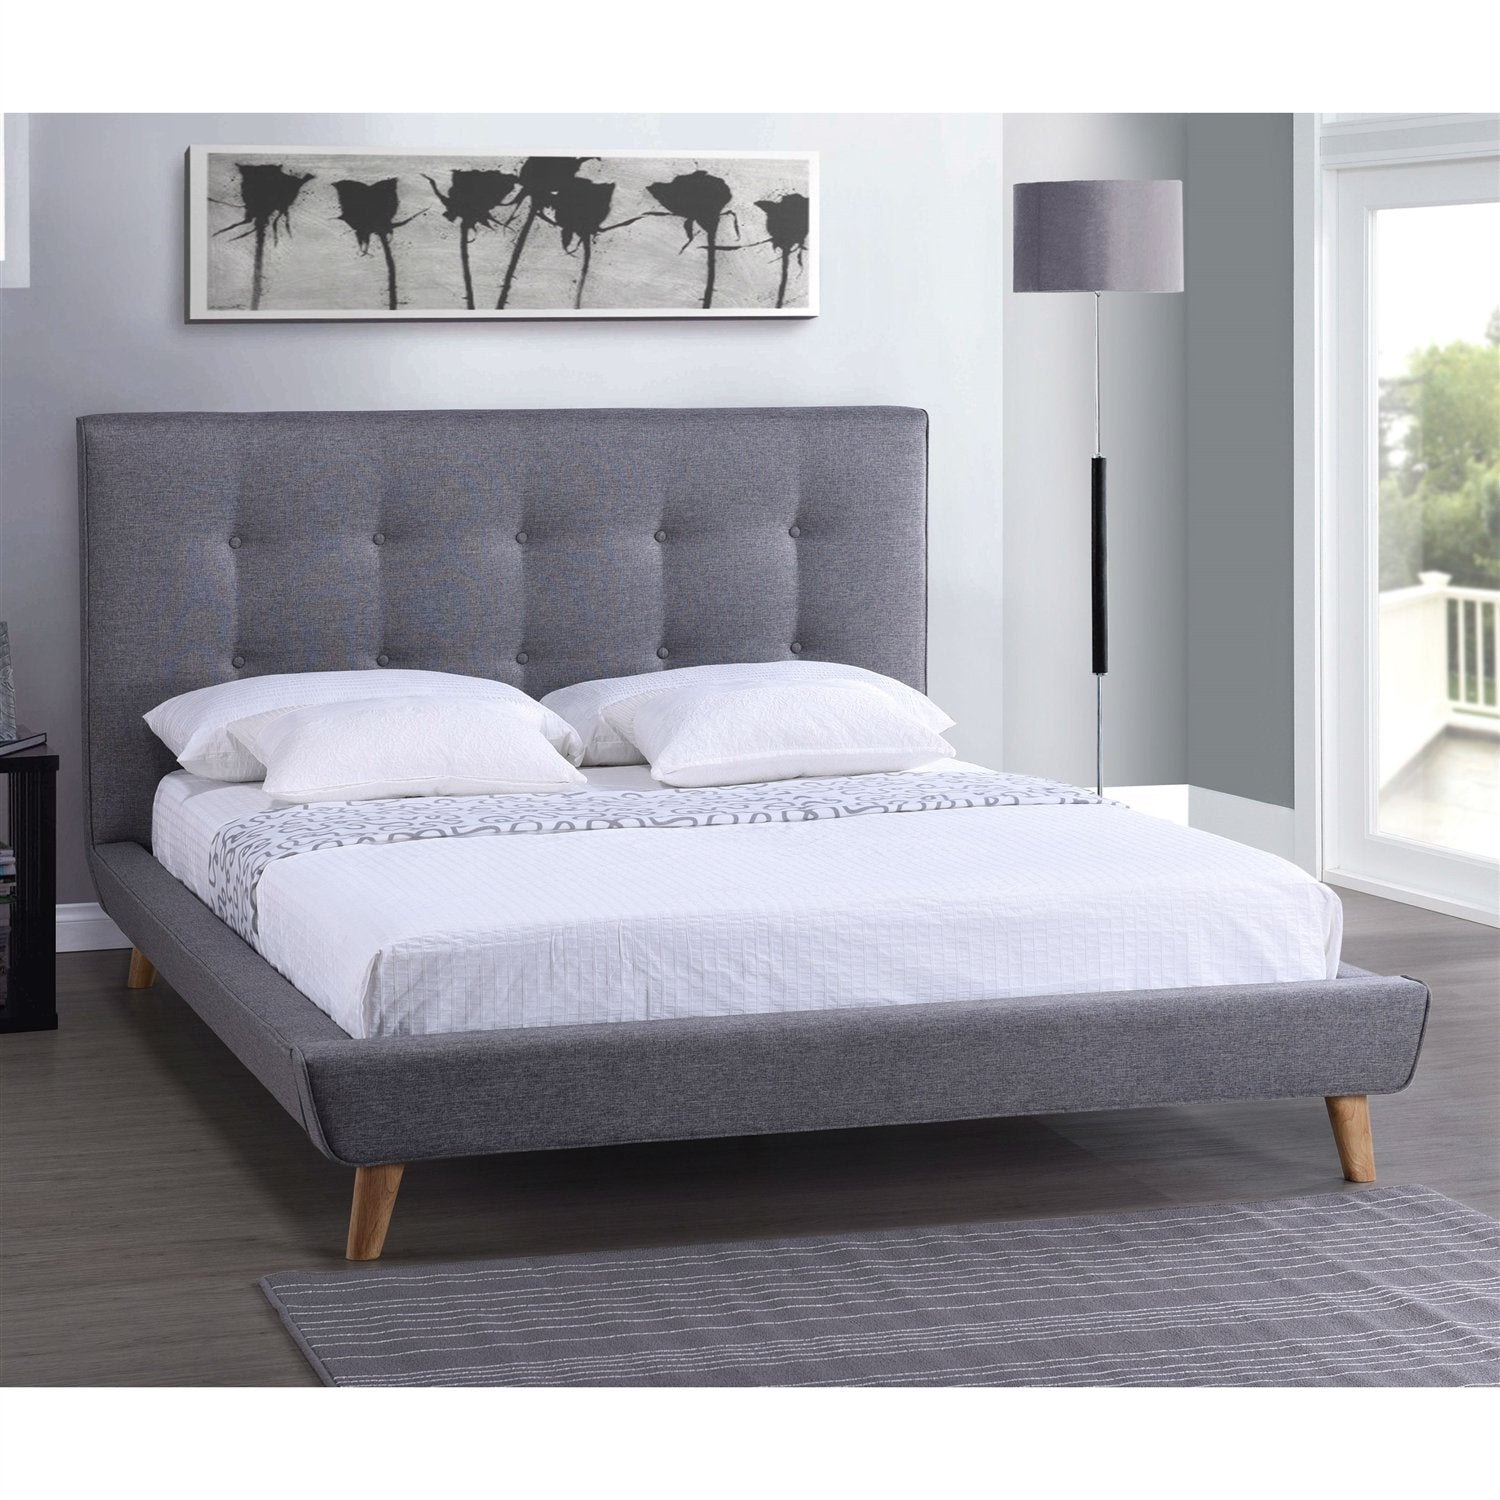 Full size Modern Grey Linen Upholstered Platform Bed with Headboard